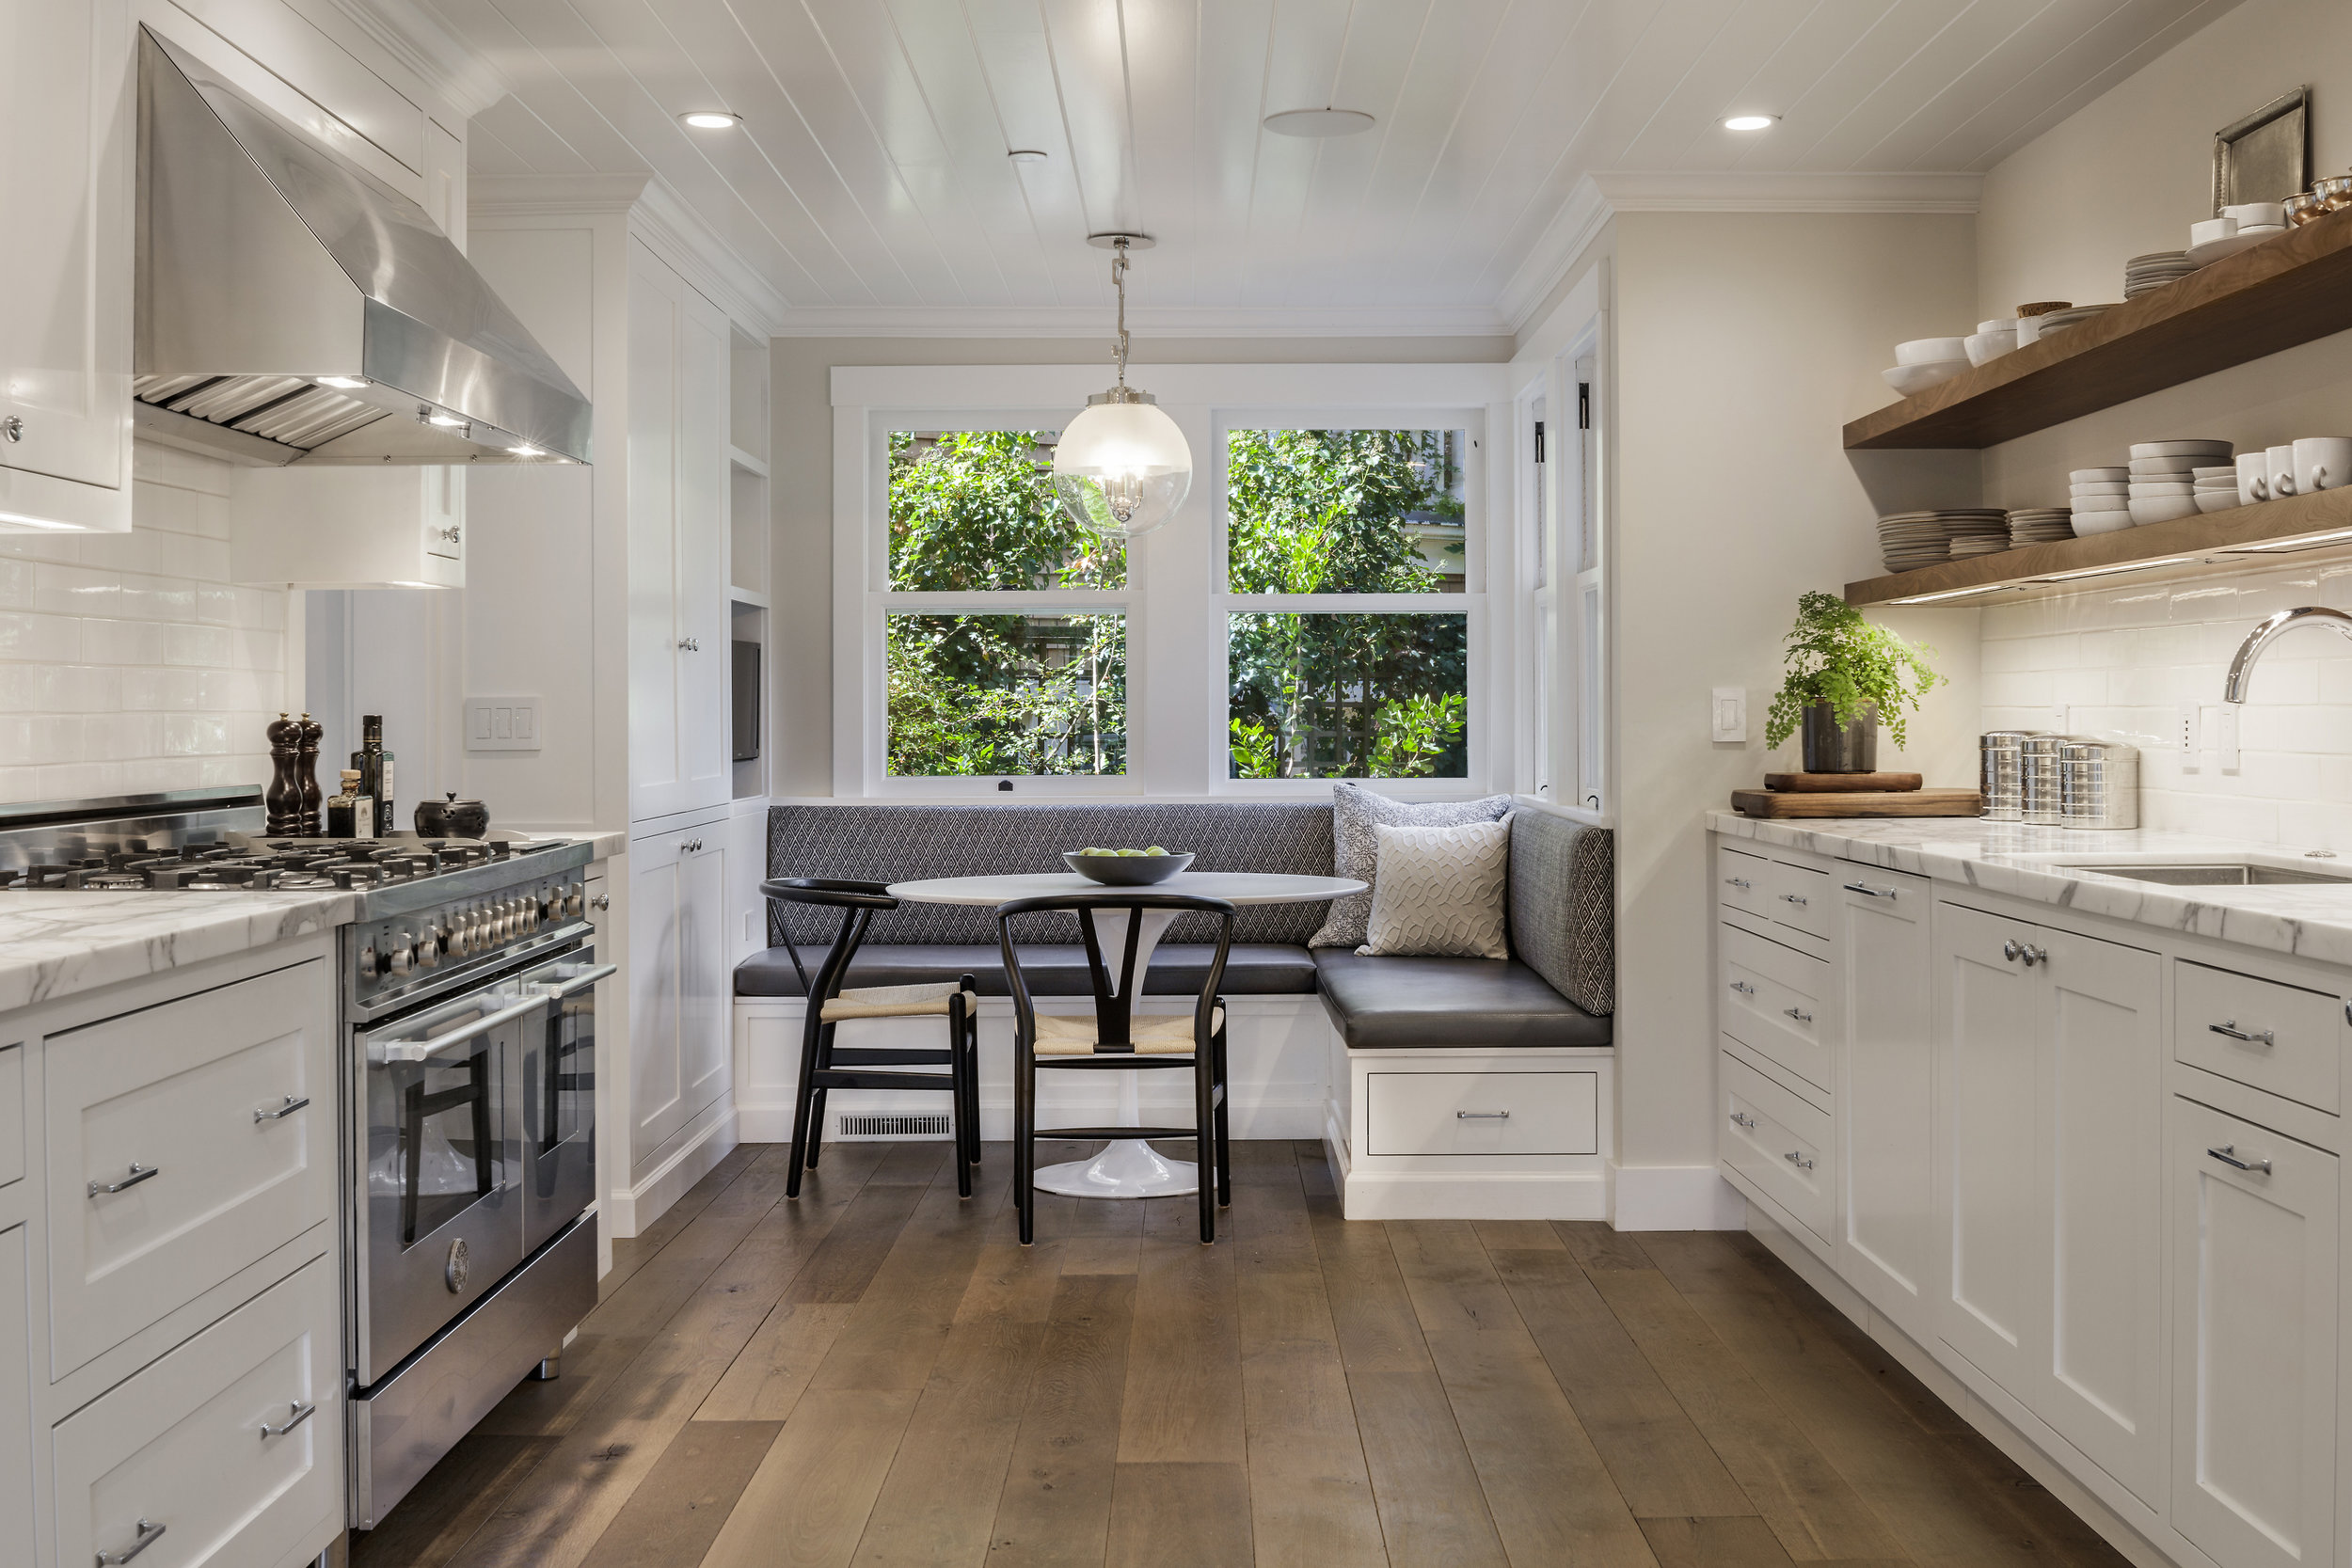 48-Raymond-Ave-San-Rafael-kitchen-3813-high-res.jpg